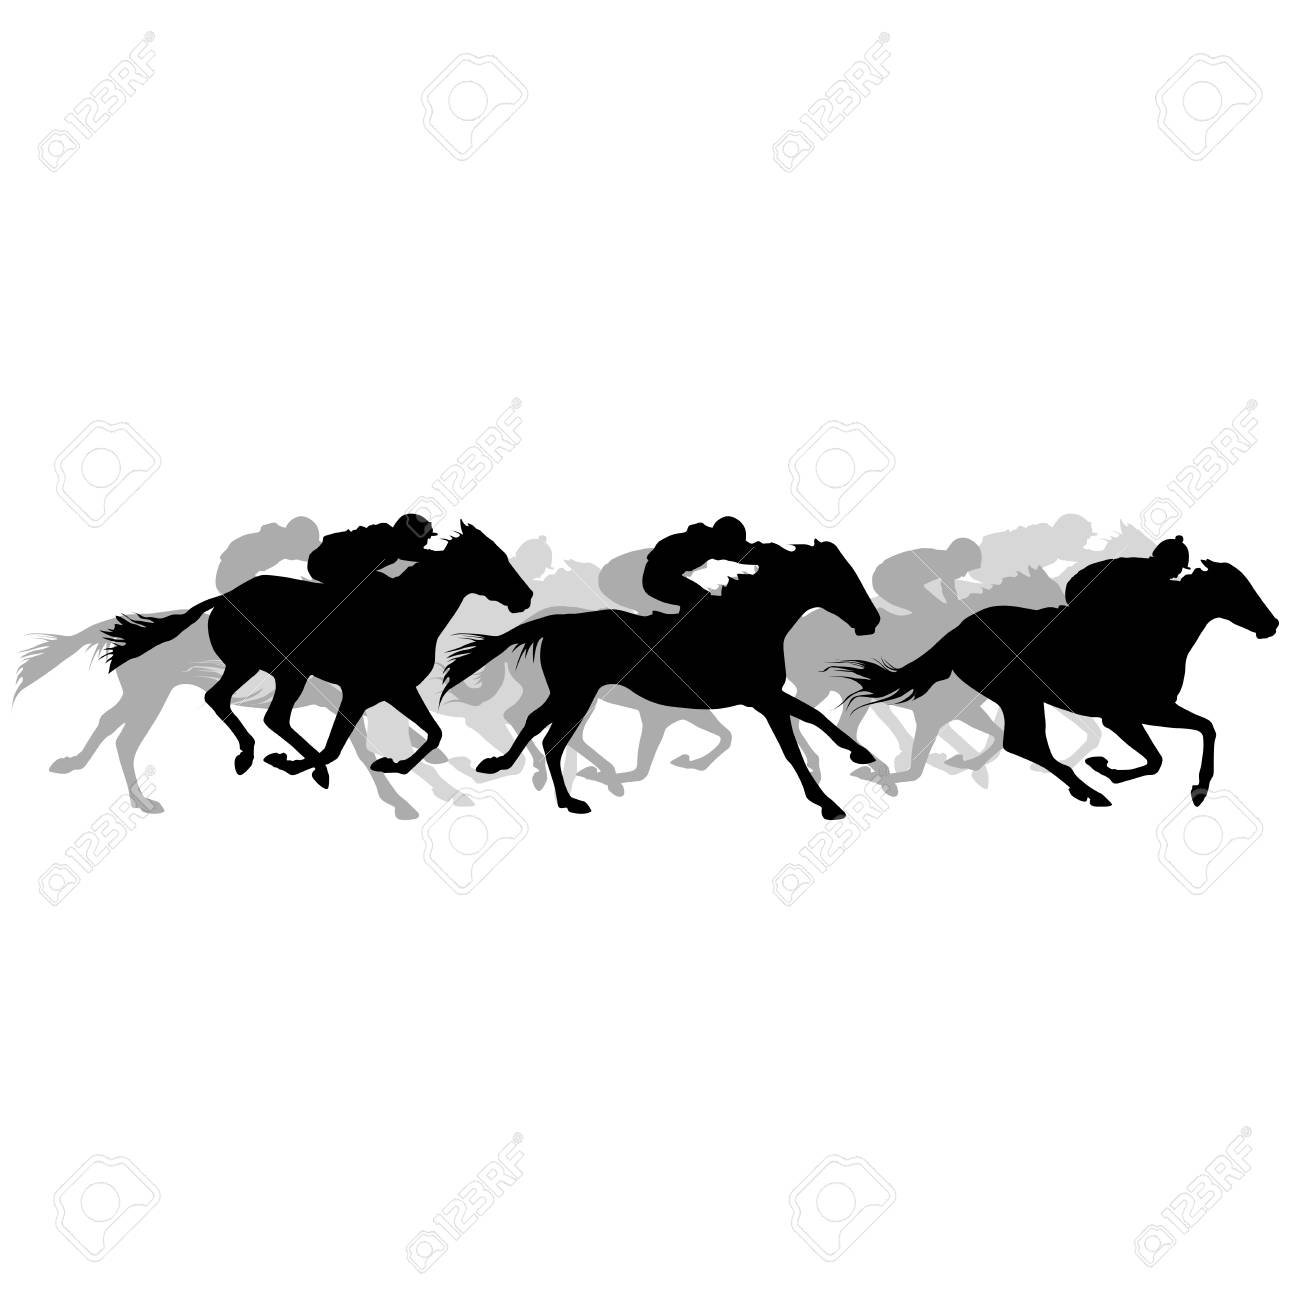 Horse Race Silhouette Of Running Horses With Jockey Royalty Free Cliparts Vectors And Stock Illustration Image 114736698